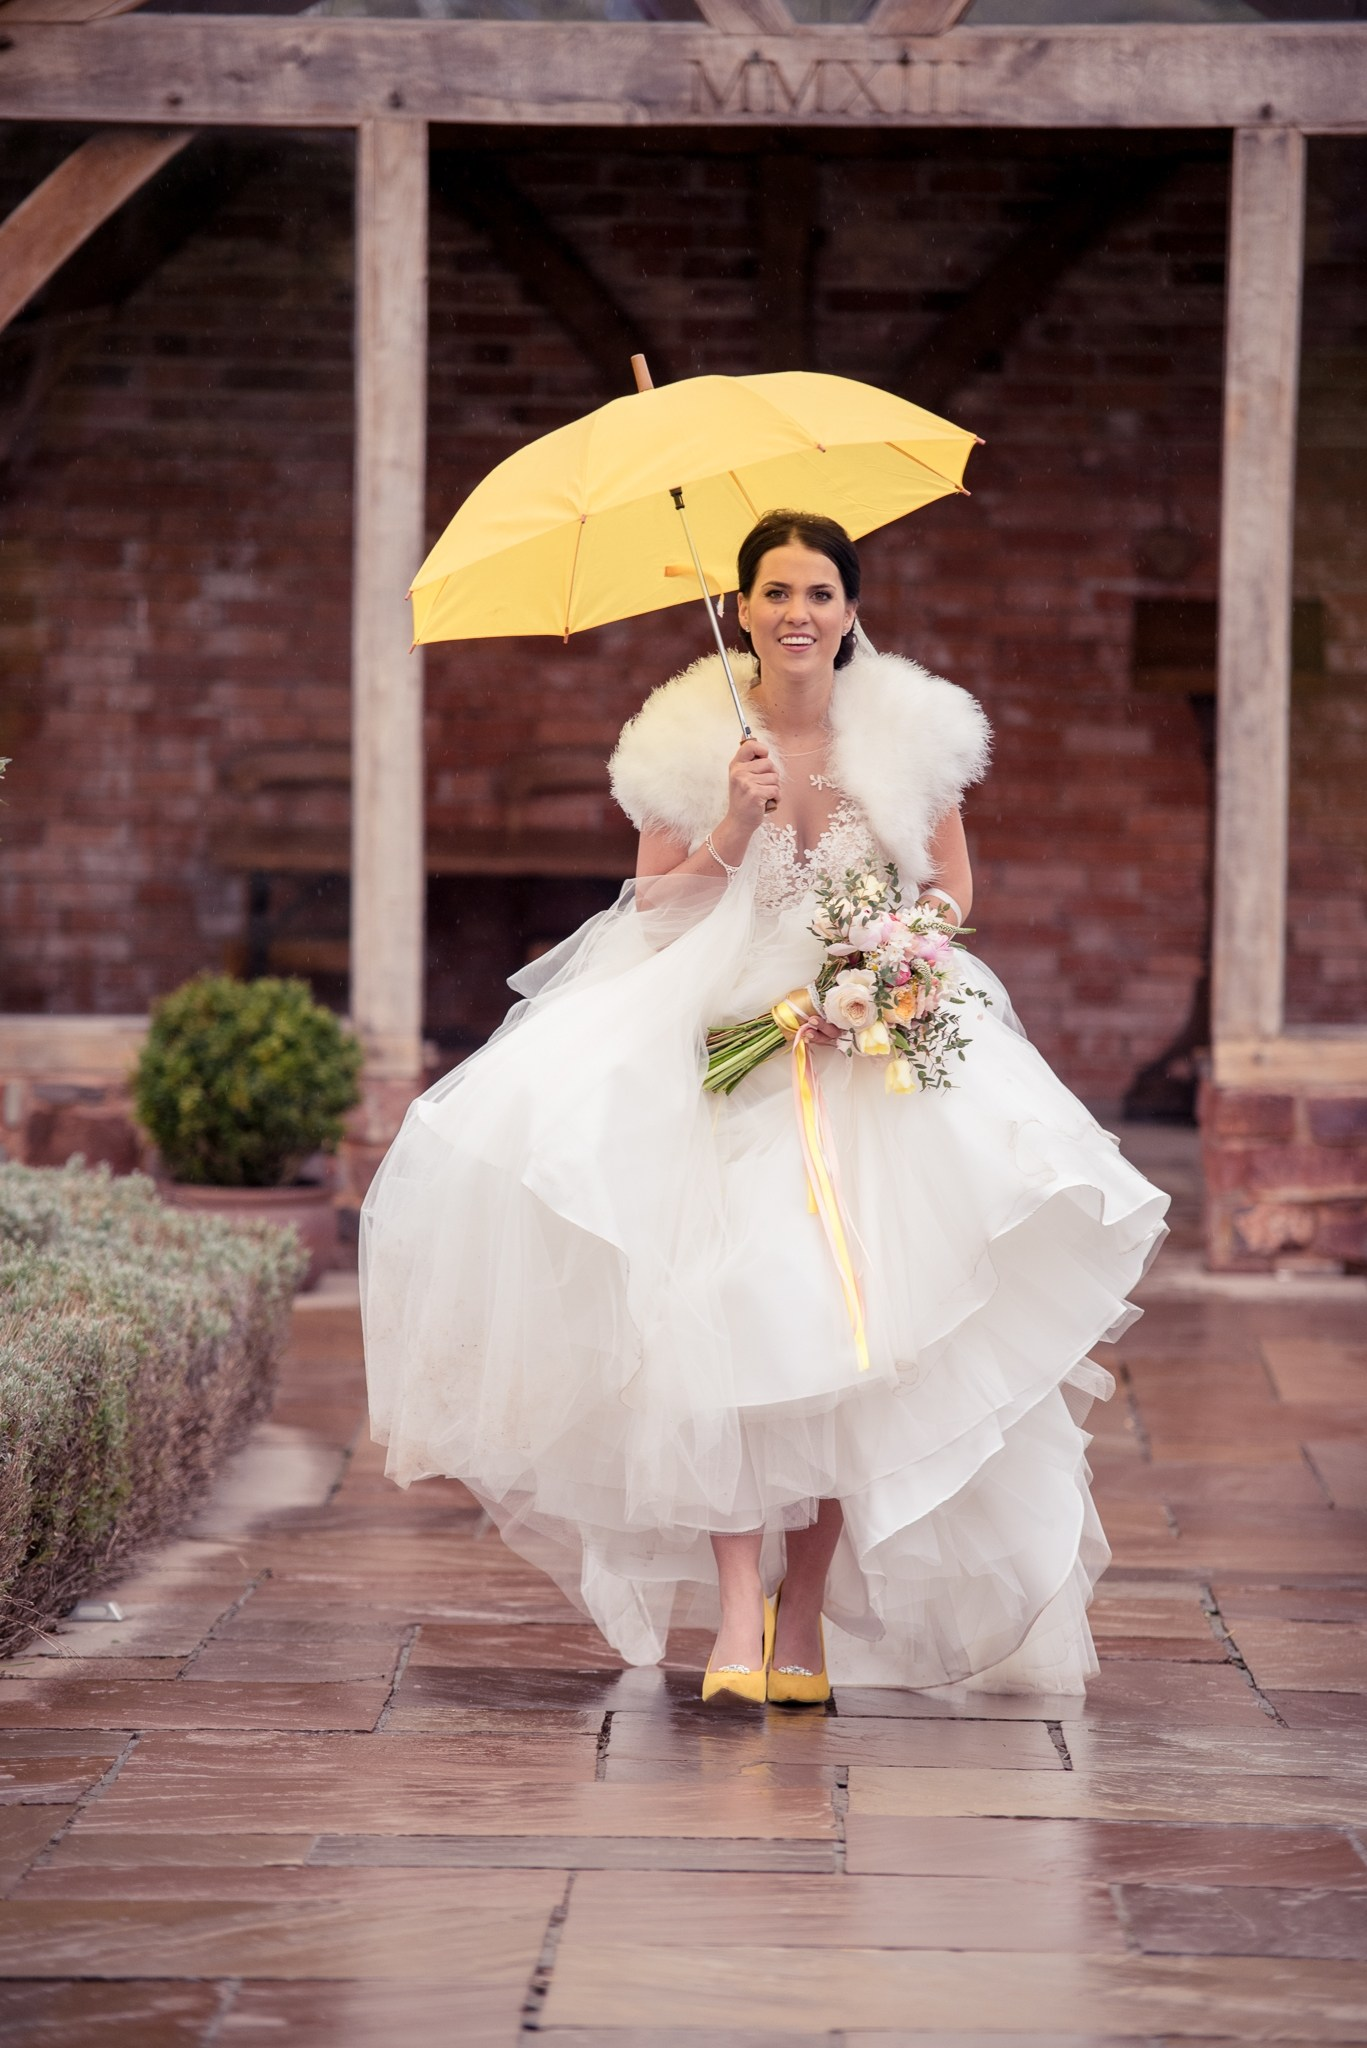 Bride with bright yellow umbrella walks the aisle in the walled garden